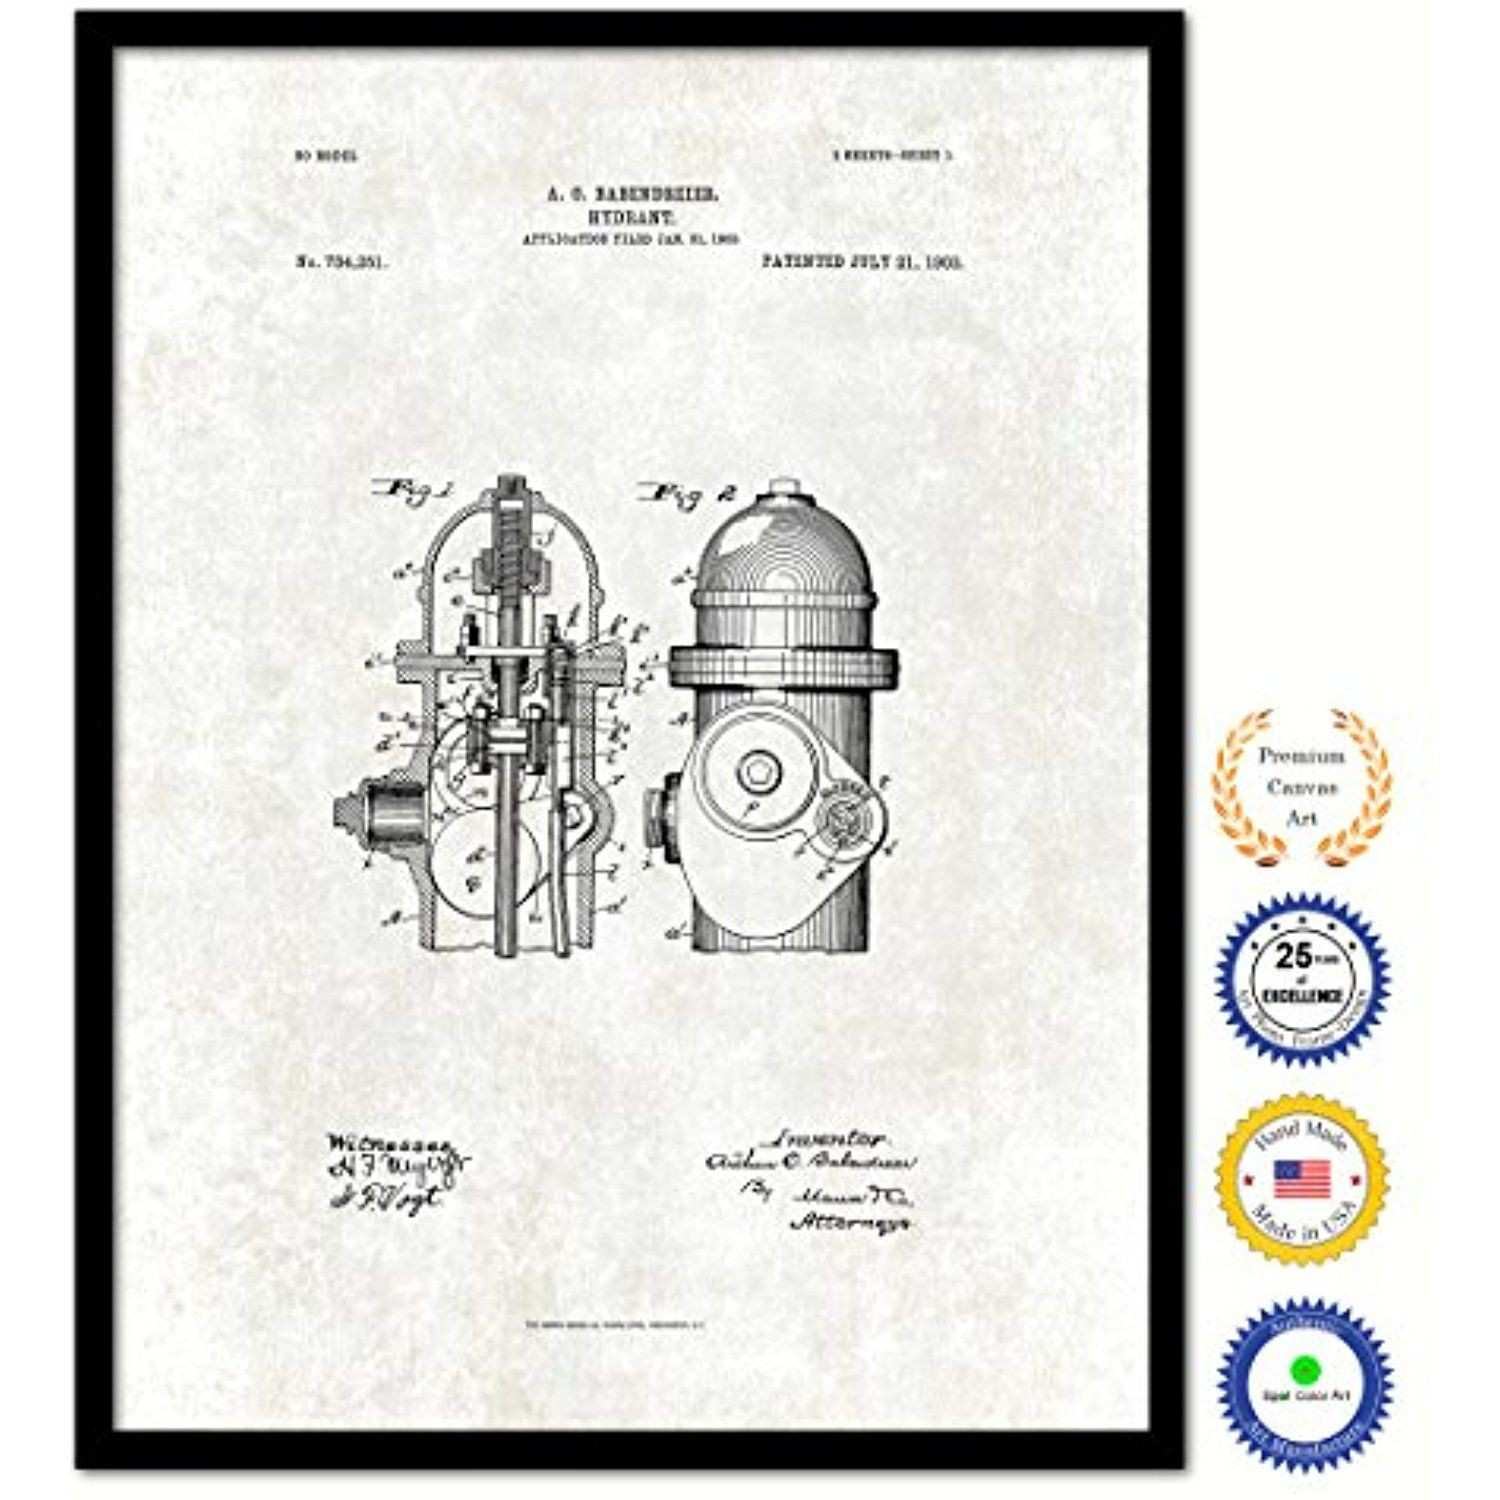 1903 Firefighter Hydrant Vintage Antique Patent Artwork Great for